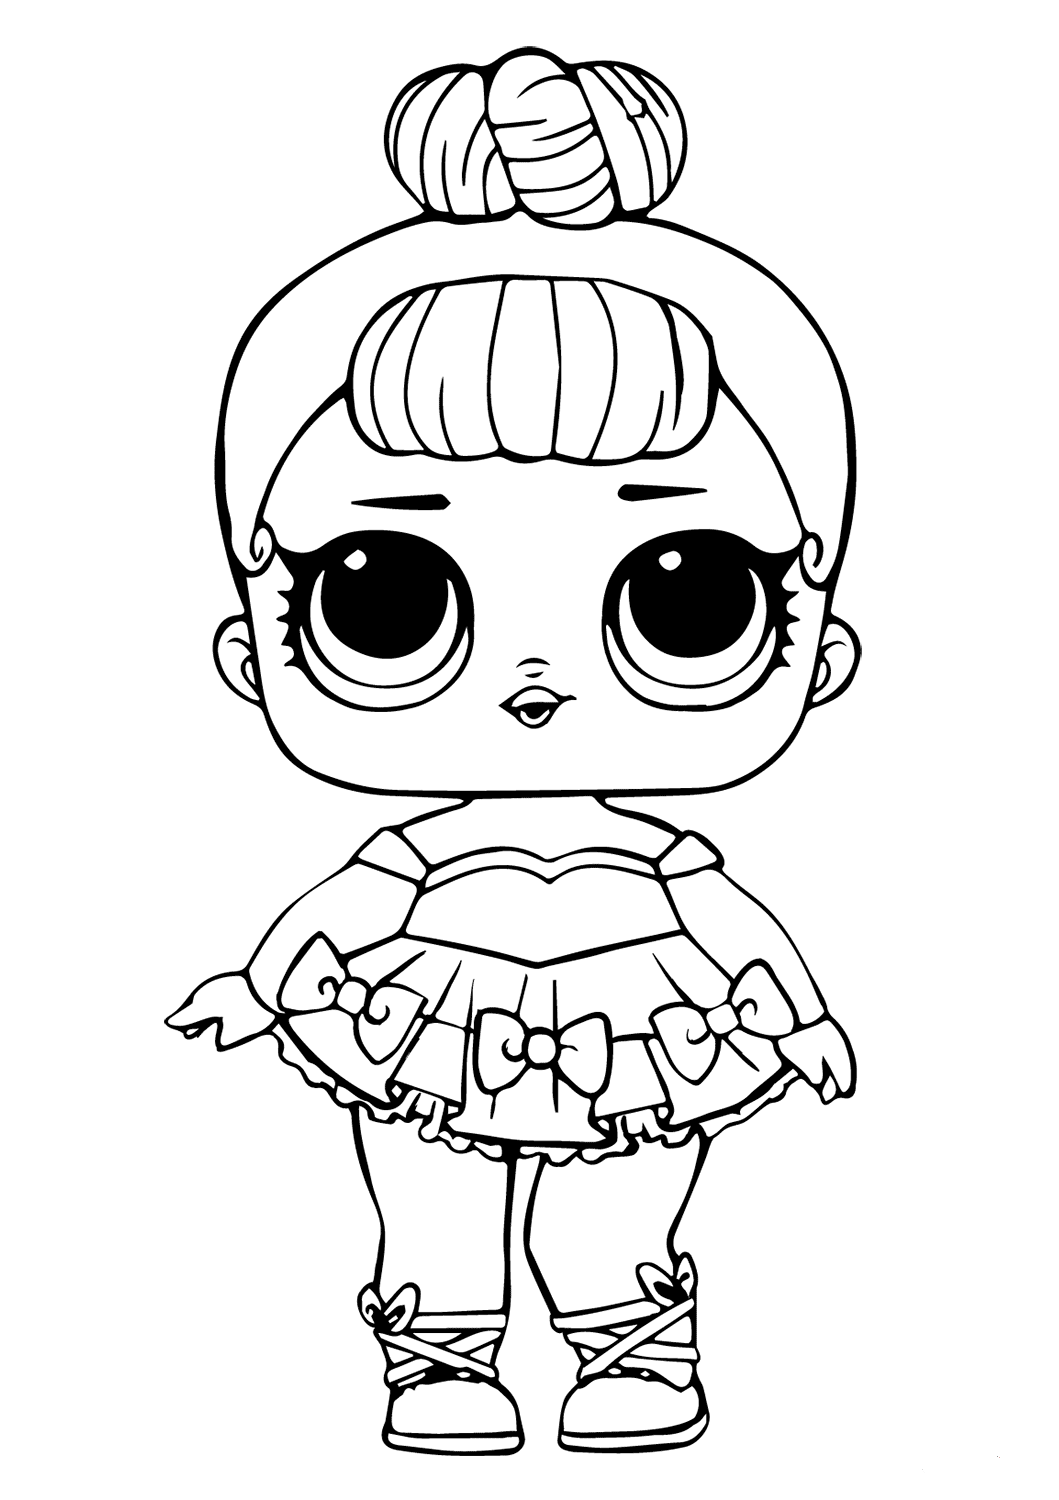 Lol Doll Coloring Page Miss Baby Glitter Baby Coloring Pages Cute Coloring Pages Lol Dolls